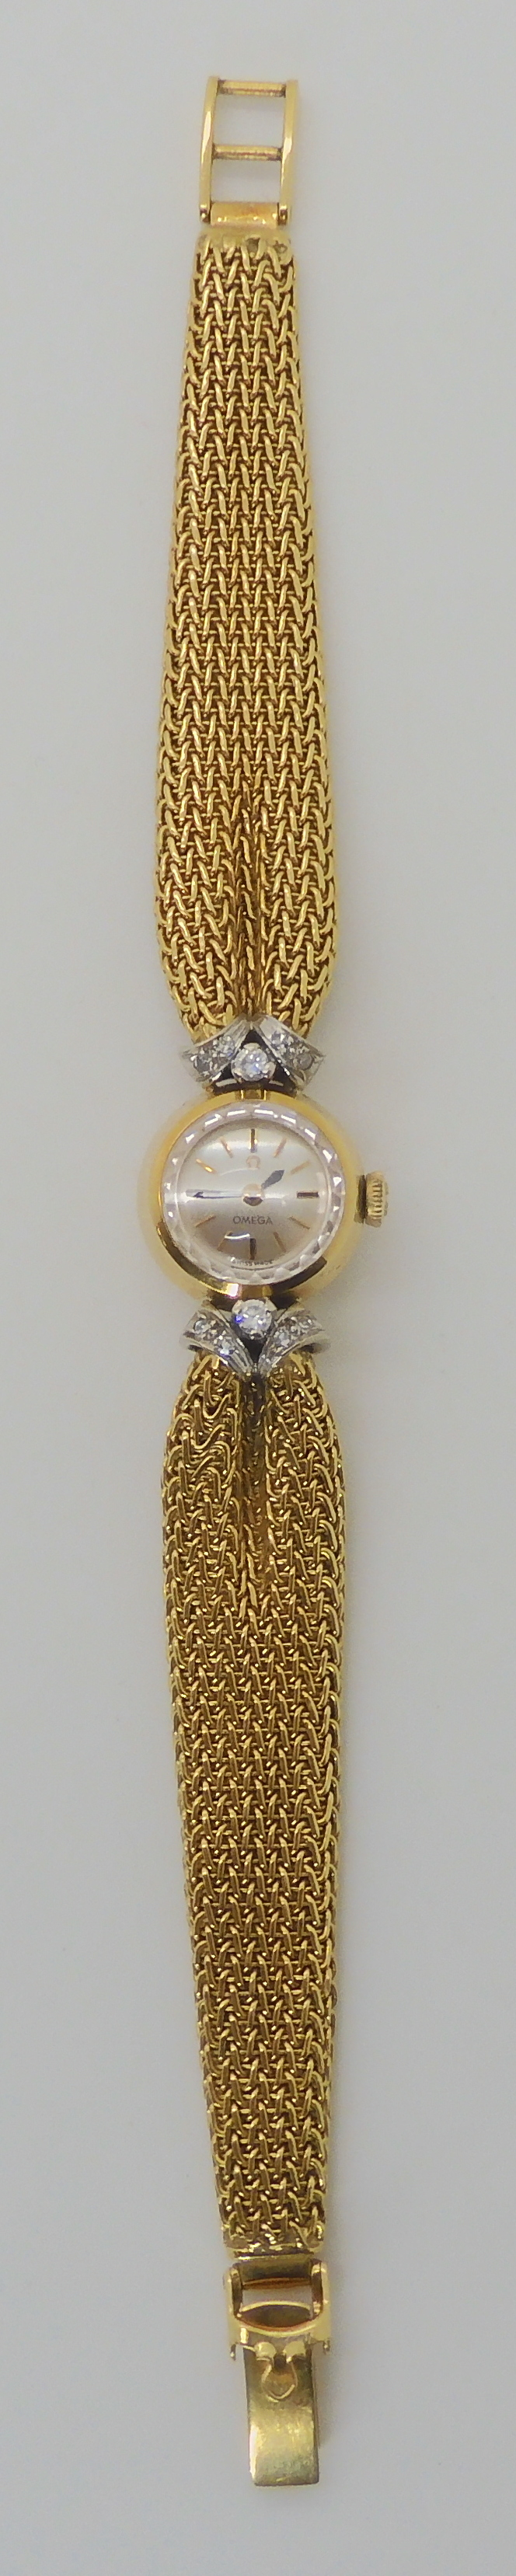 A LADIES 18CT GOLD OMEGA WITH DIAMONDS AND DECORATIVE STRAP the woven mesh strap in puckered to look - Image 3 of 5